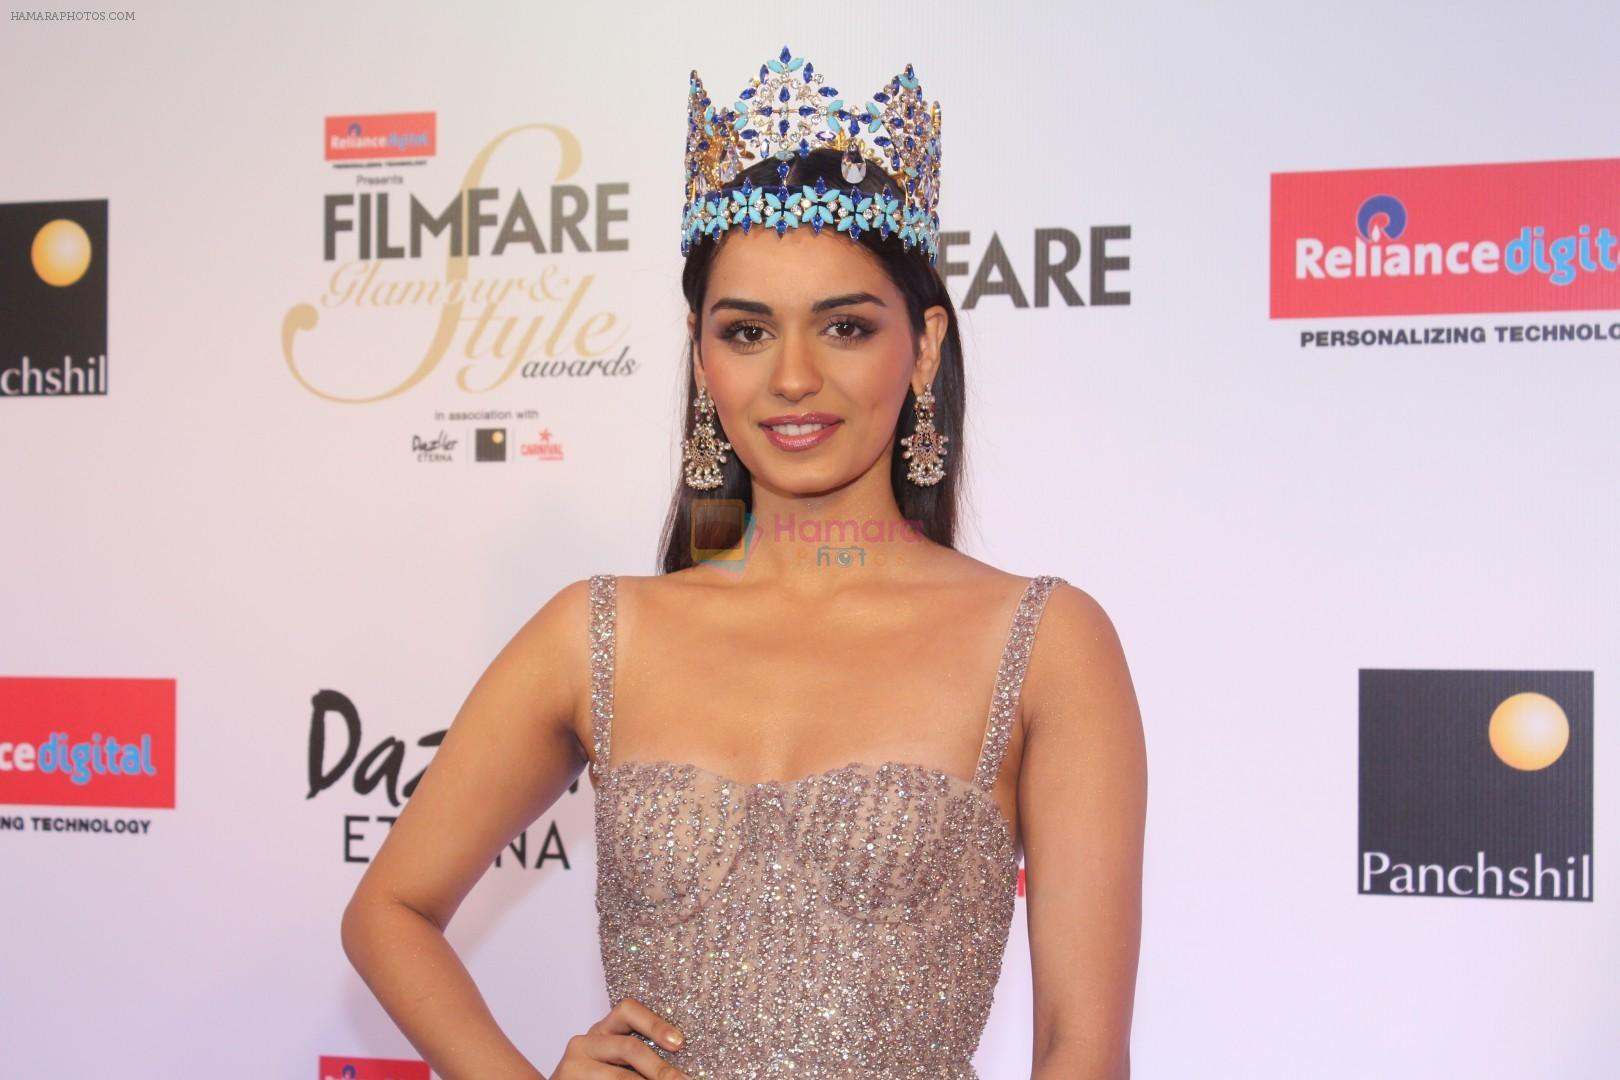 The Official Thread of Miss World 2017 ® Manushi Chhillar - India - Page 2 Hpse_fullsize__2676384371_Manushi%20Chillar%20at%20the%20Red%20Carpet%20Of%20Filmfare%20Glamour%20%26%20Style%20Awards%20on%201st%20Dec%202017%20%2885%29_5a2248703ce71